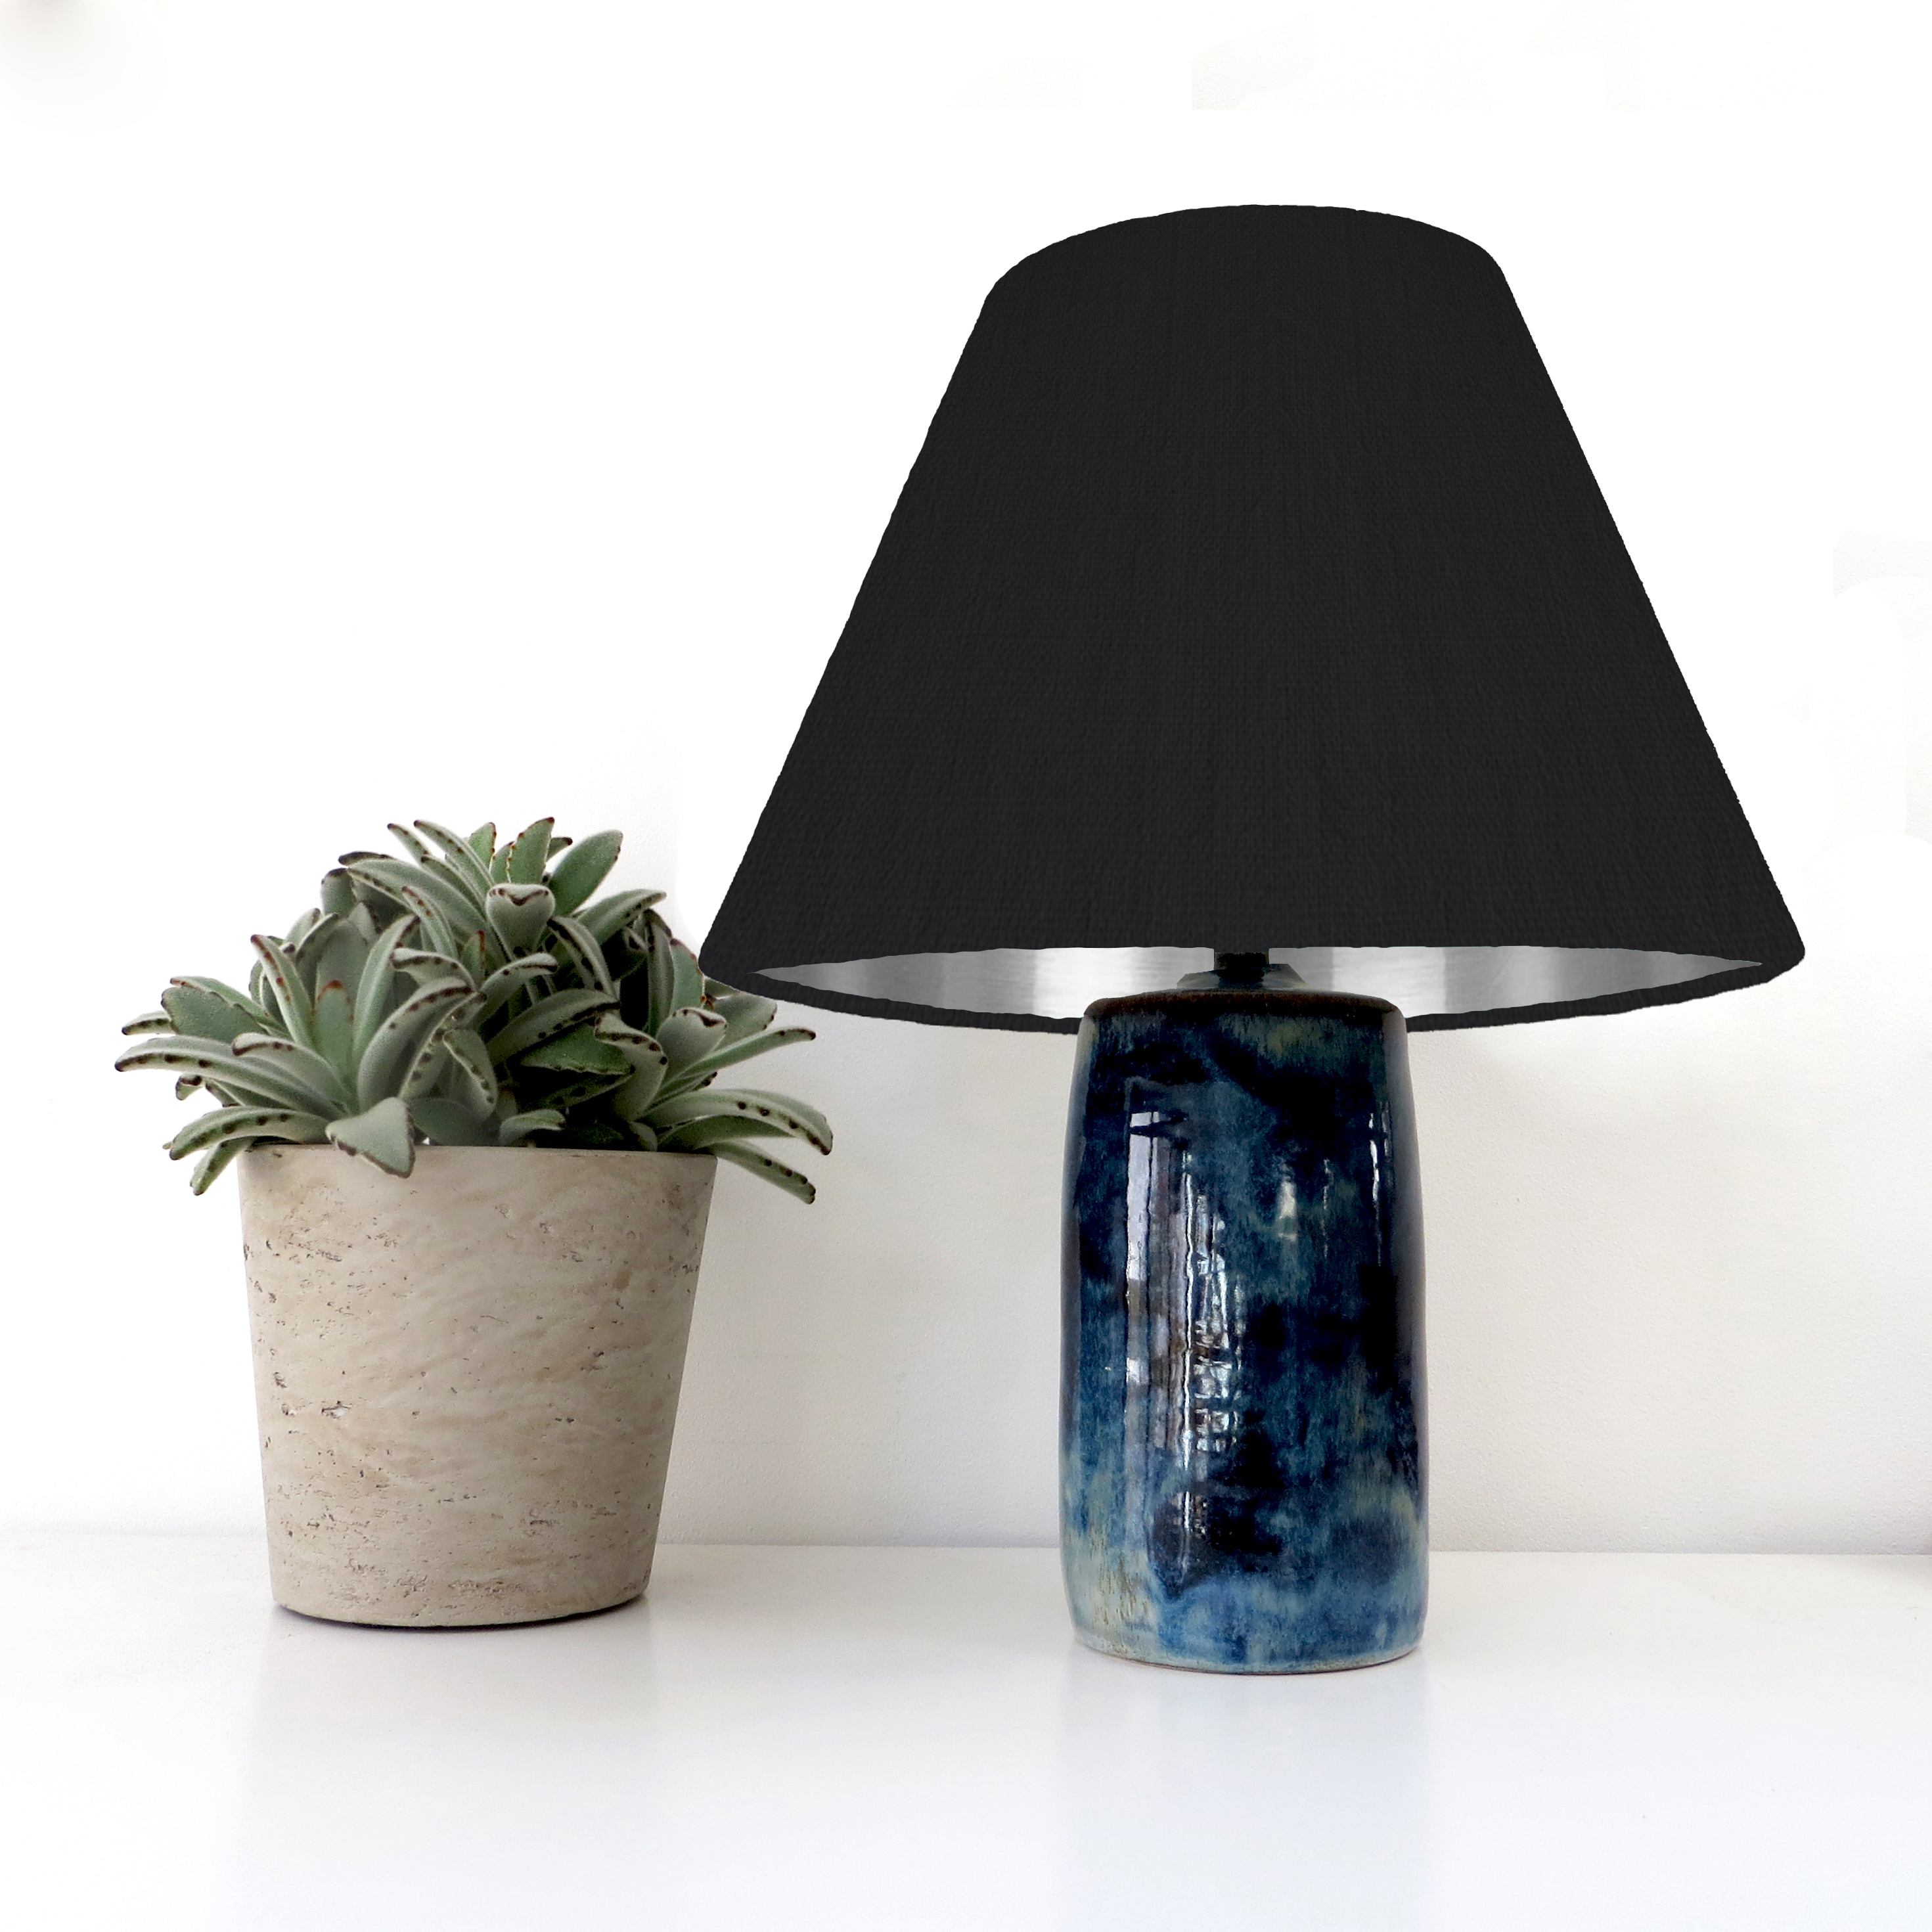 conical lampshade